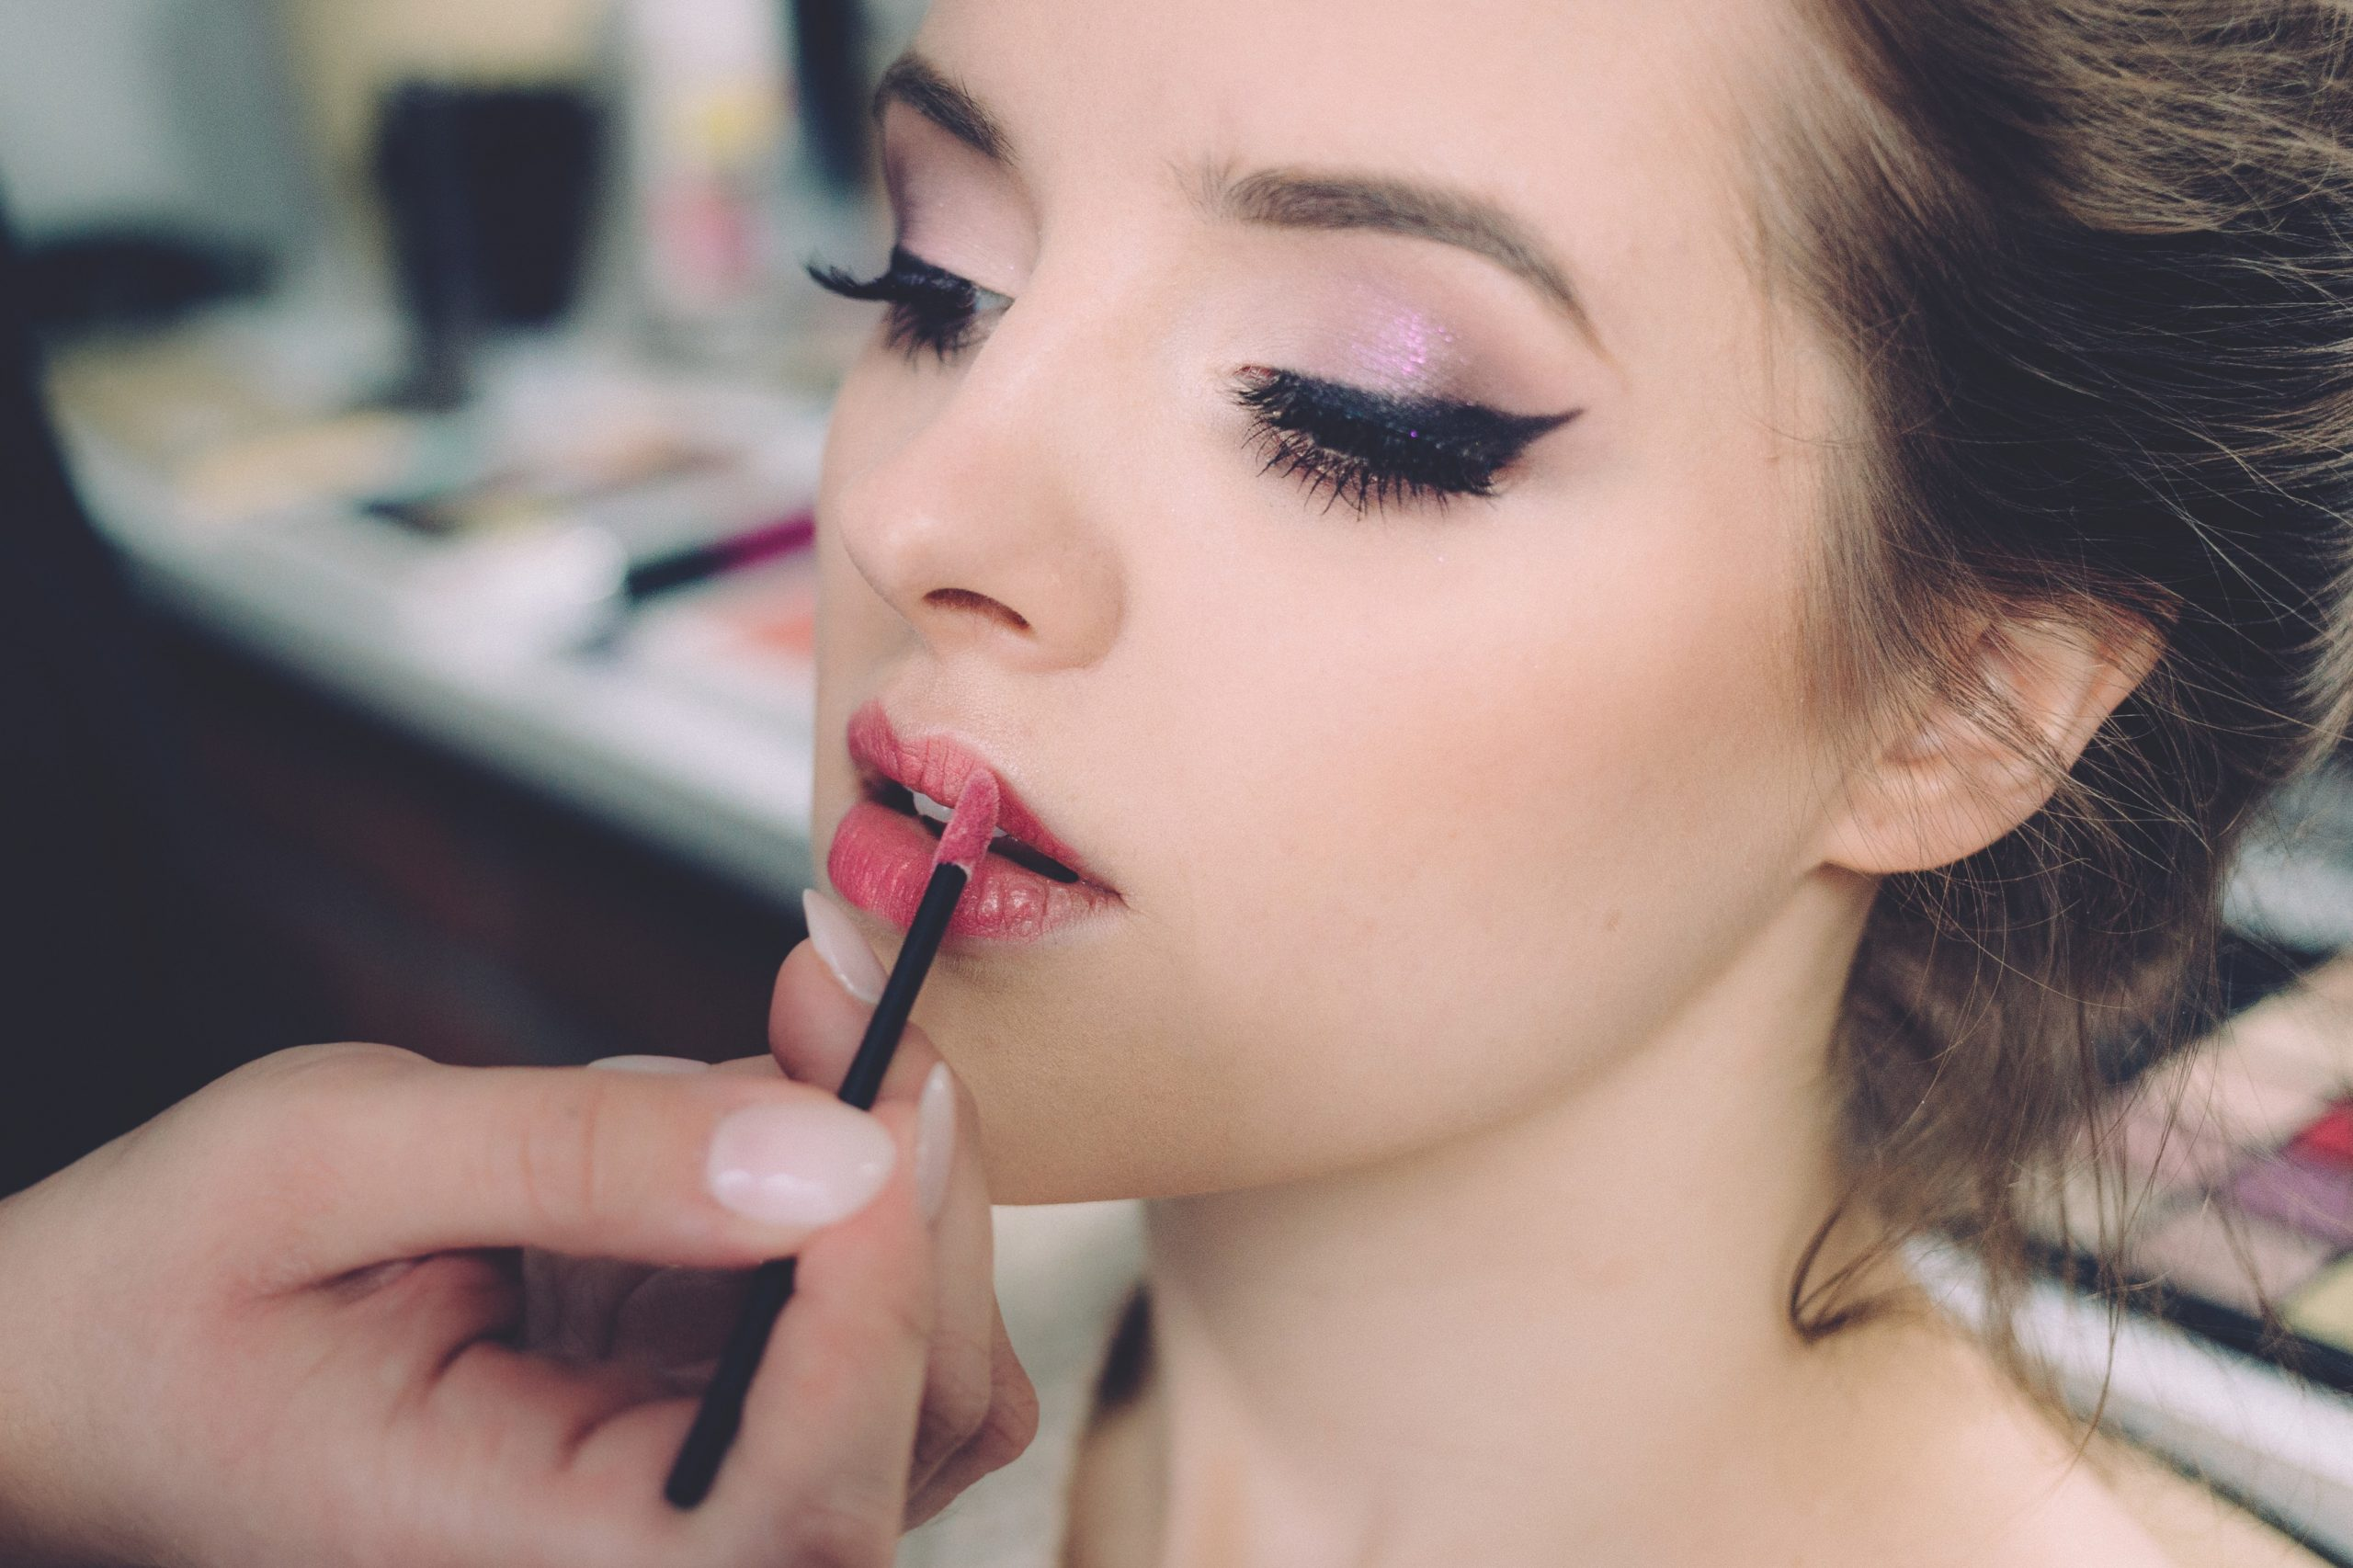 best makeup tips Archives - Online Health Media